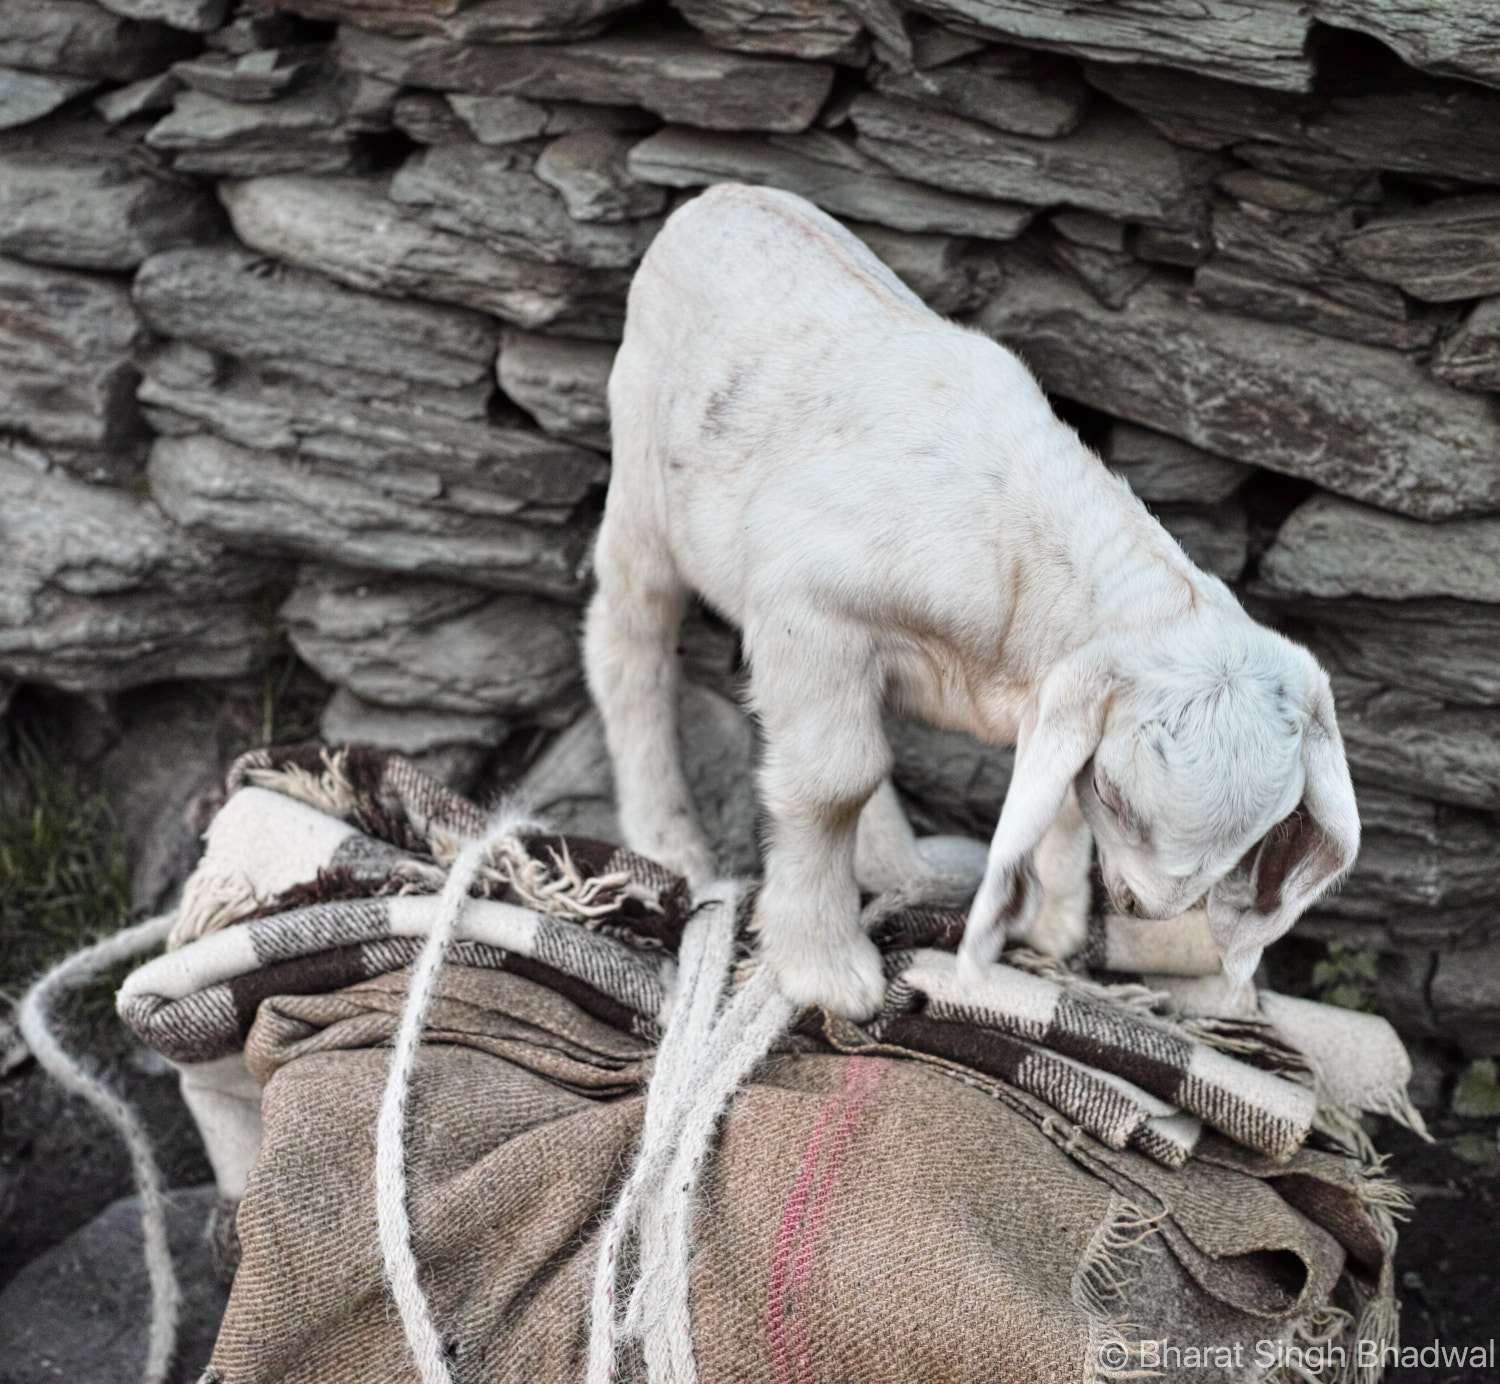 A gaddi backpack. The goat kid rides on top of the backpack.